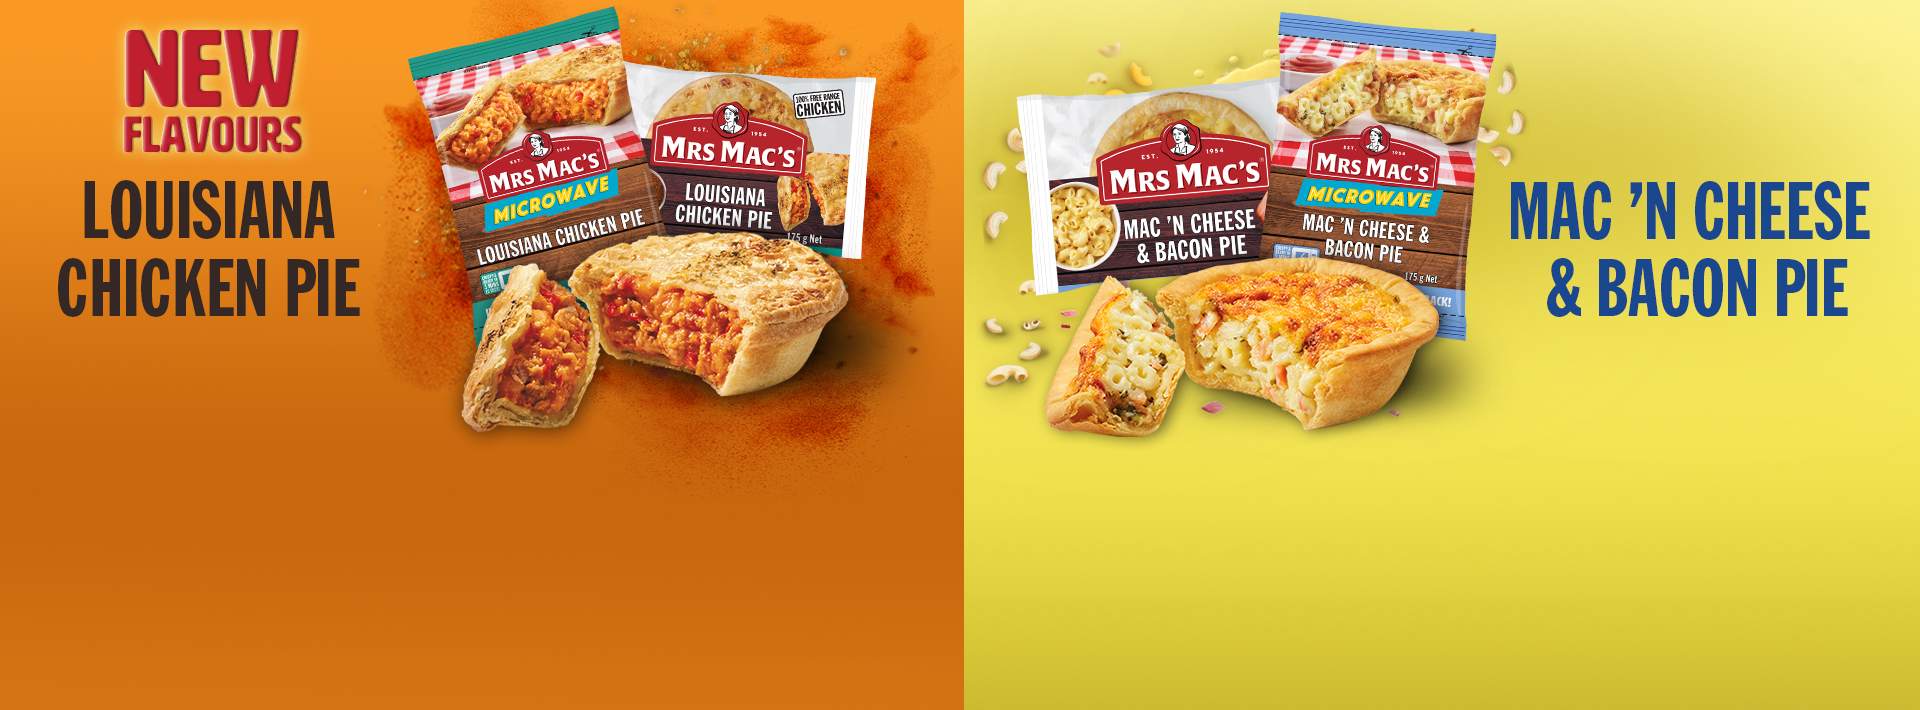 Known For Quality Family Pies Since 1954 | Mrs Mac's